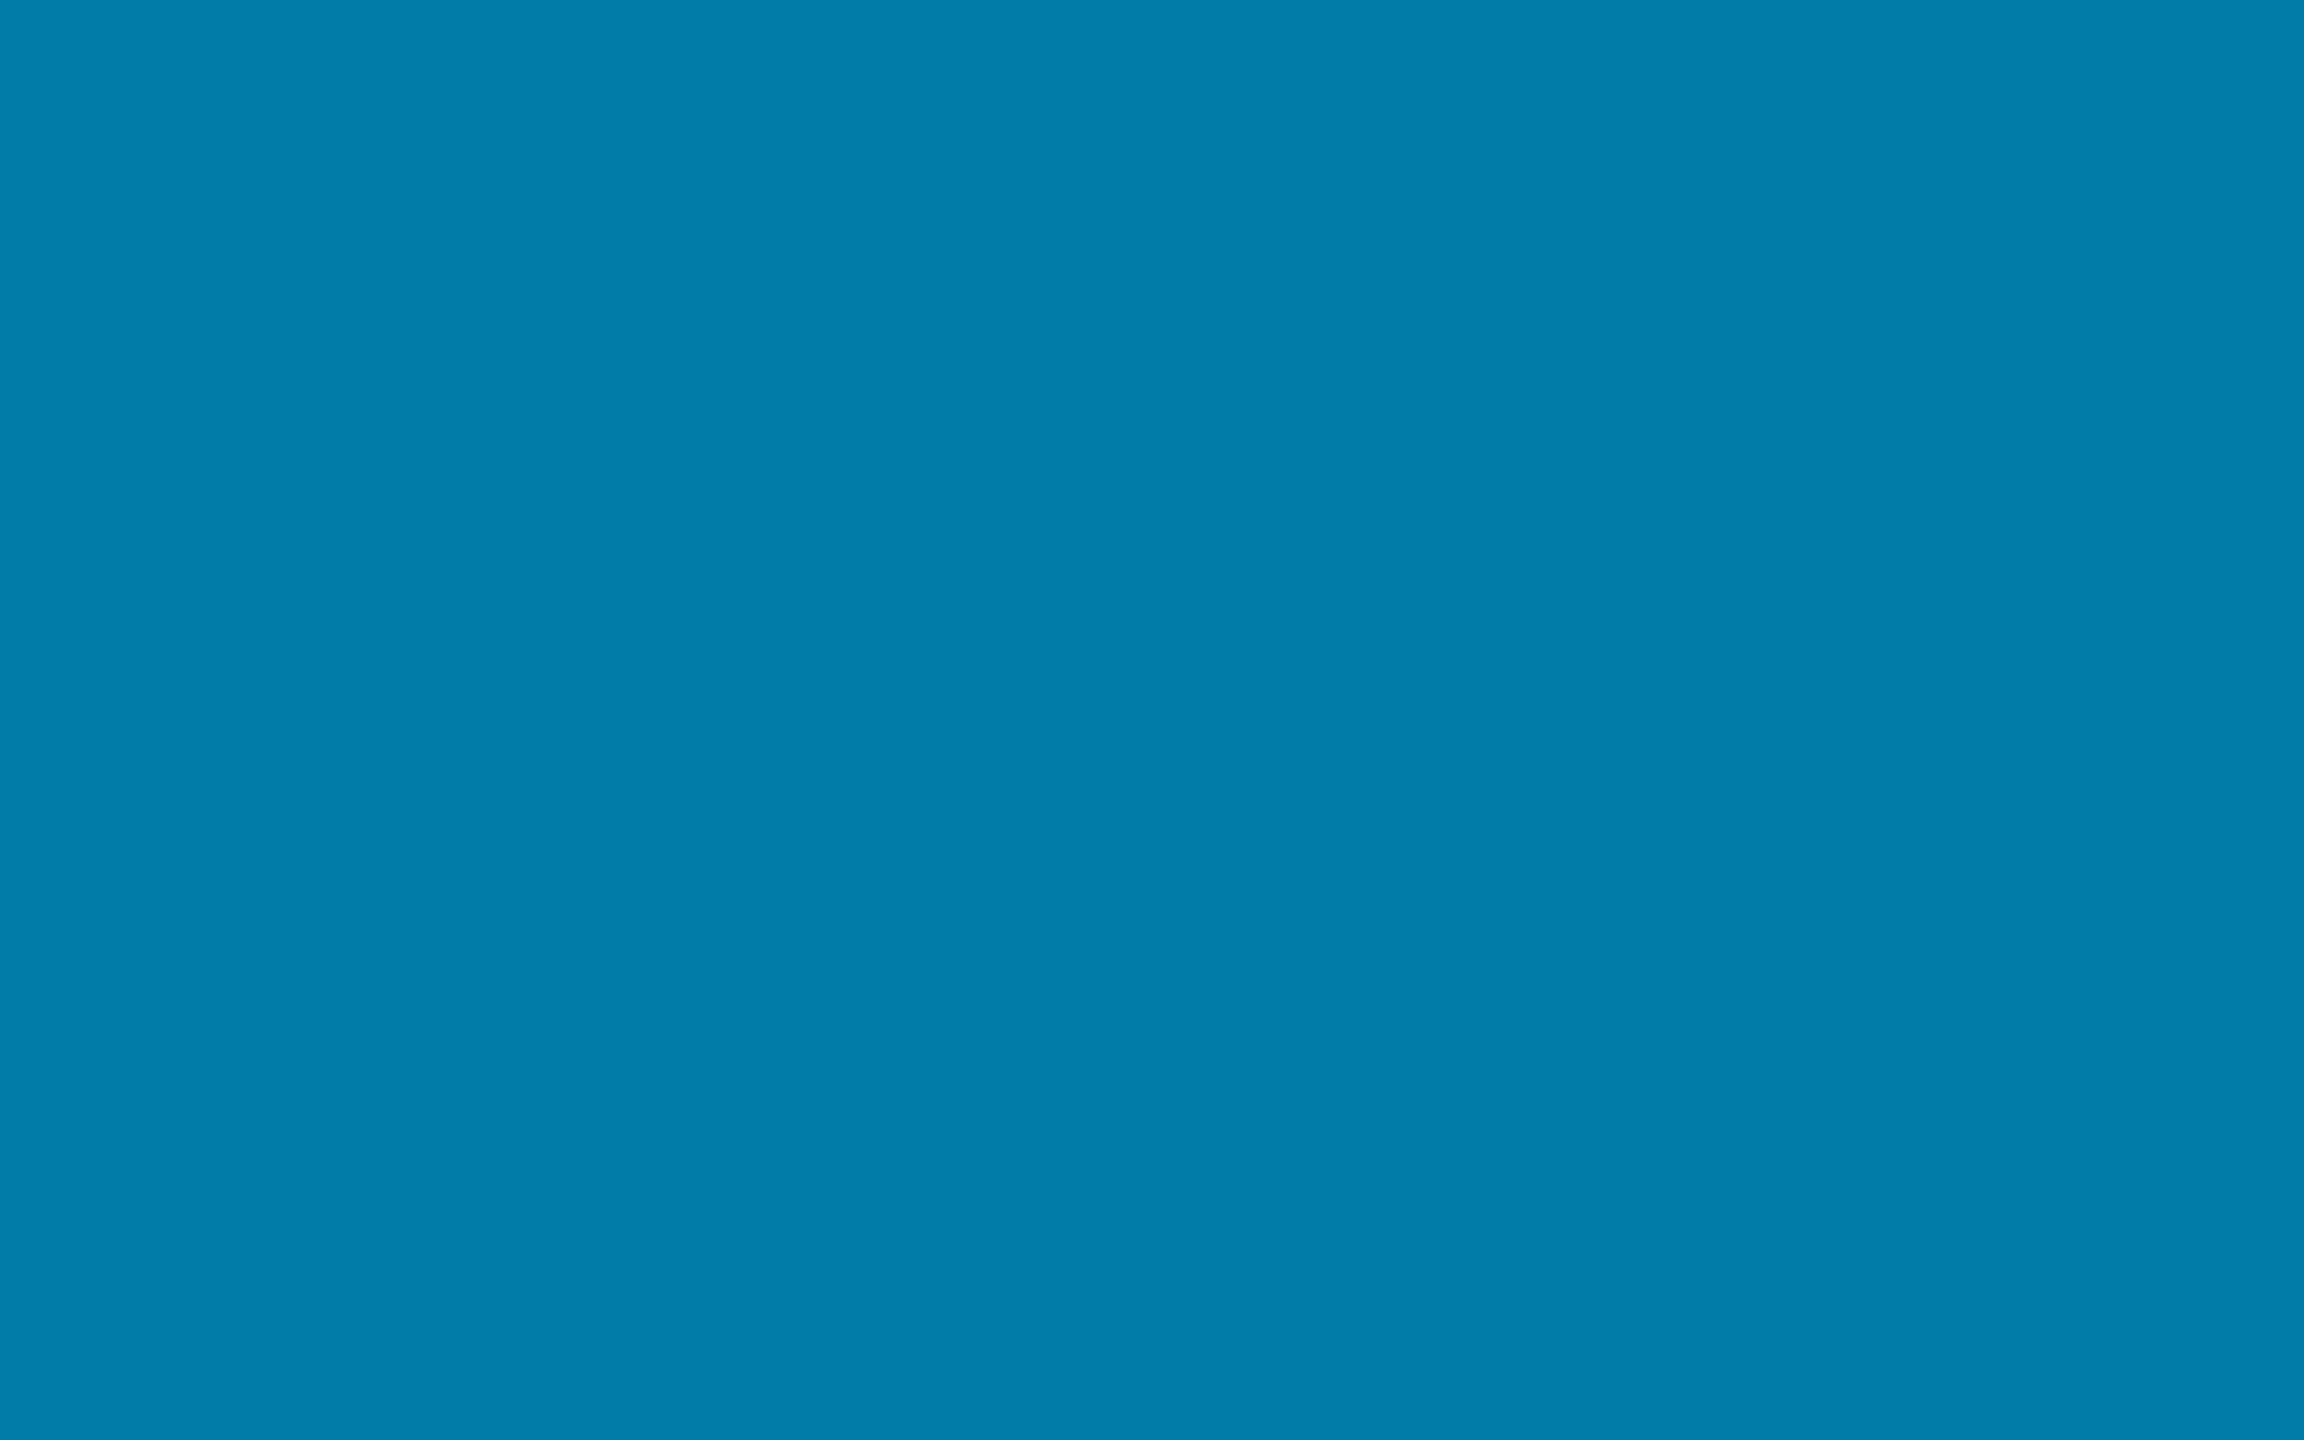 2304x1440 Cerulean Solid Color Background